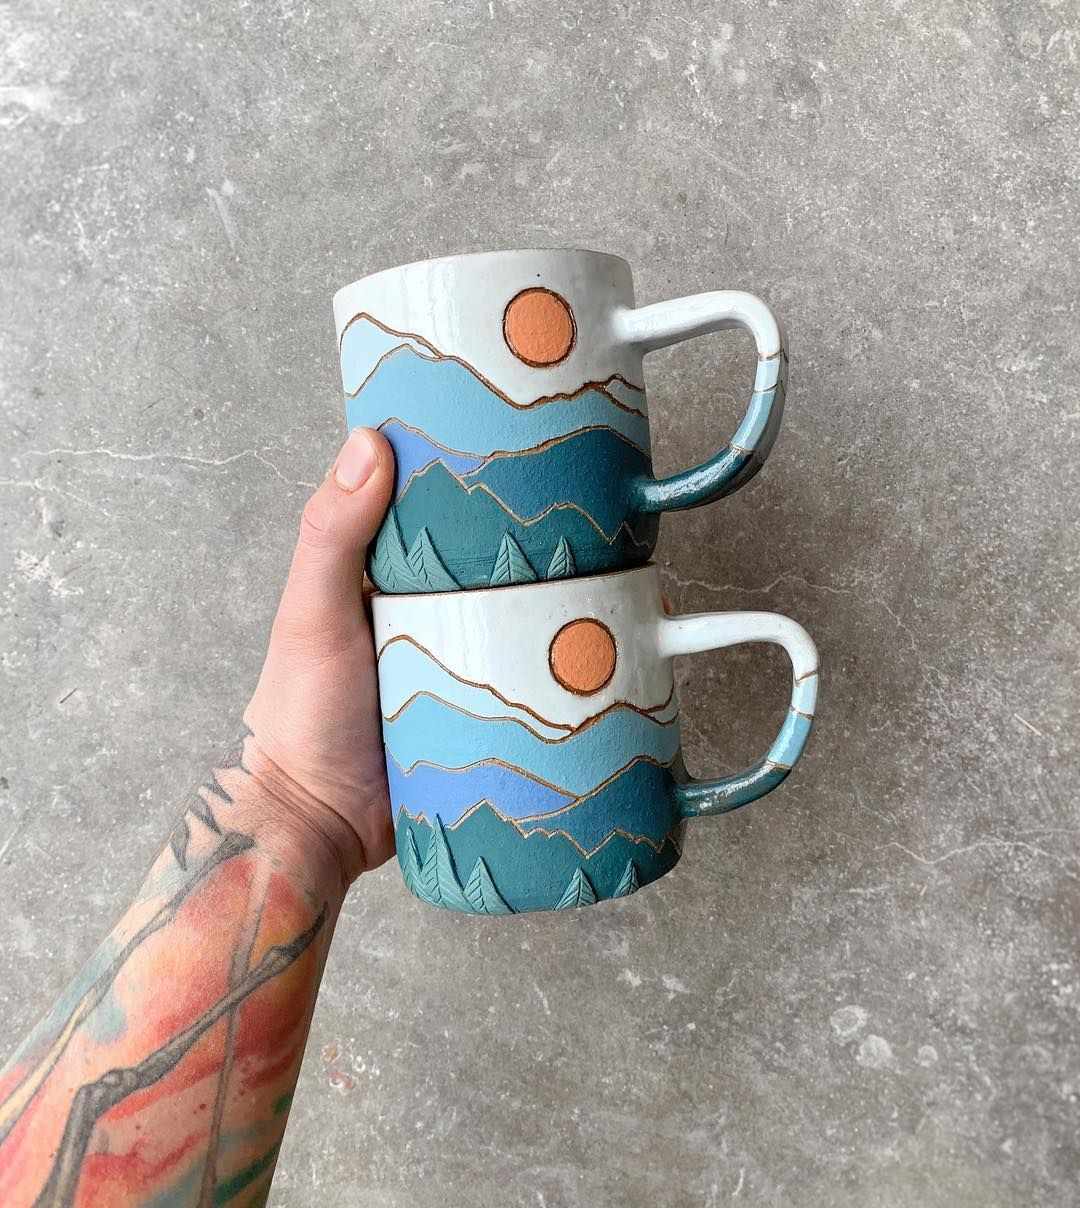 "CALLAHAN ceramics on Instagram: ""Say hello to the newest colorway in the PEAKS series!"